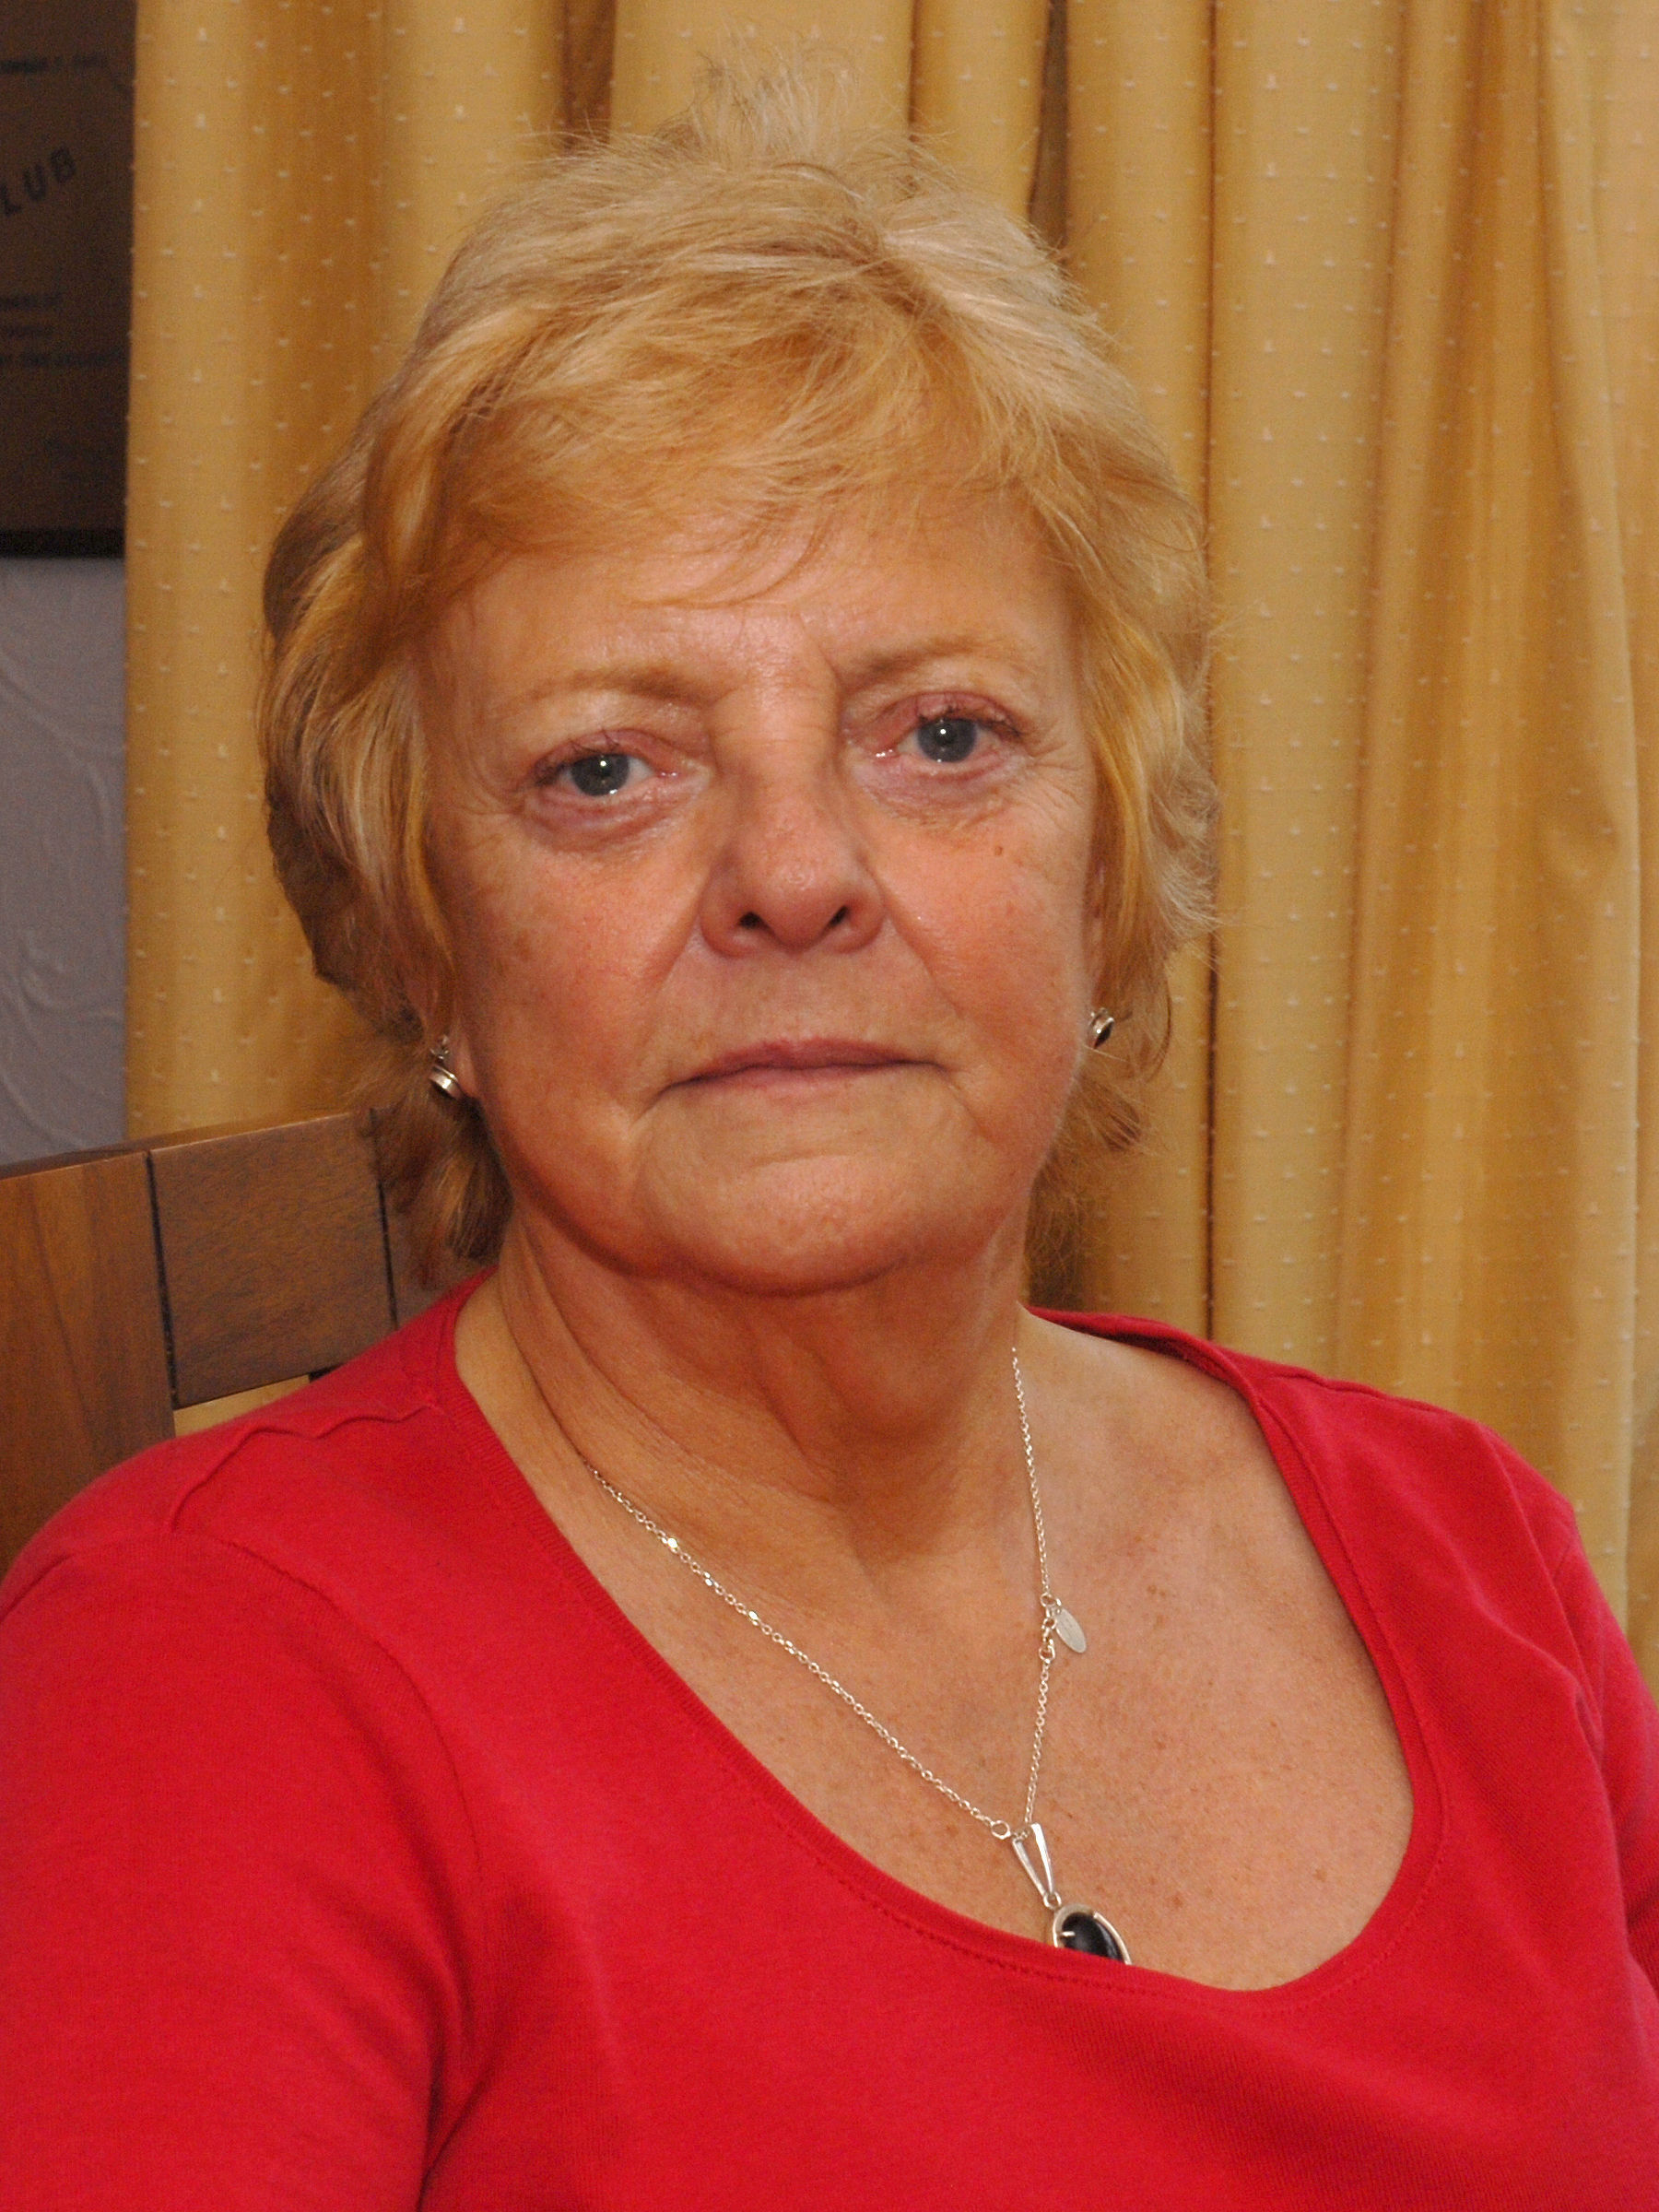 Patricia Jackson has been awarded more than £20,000